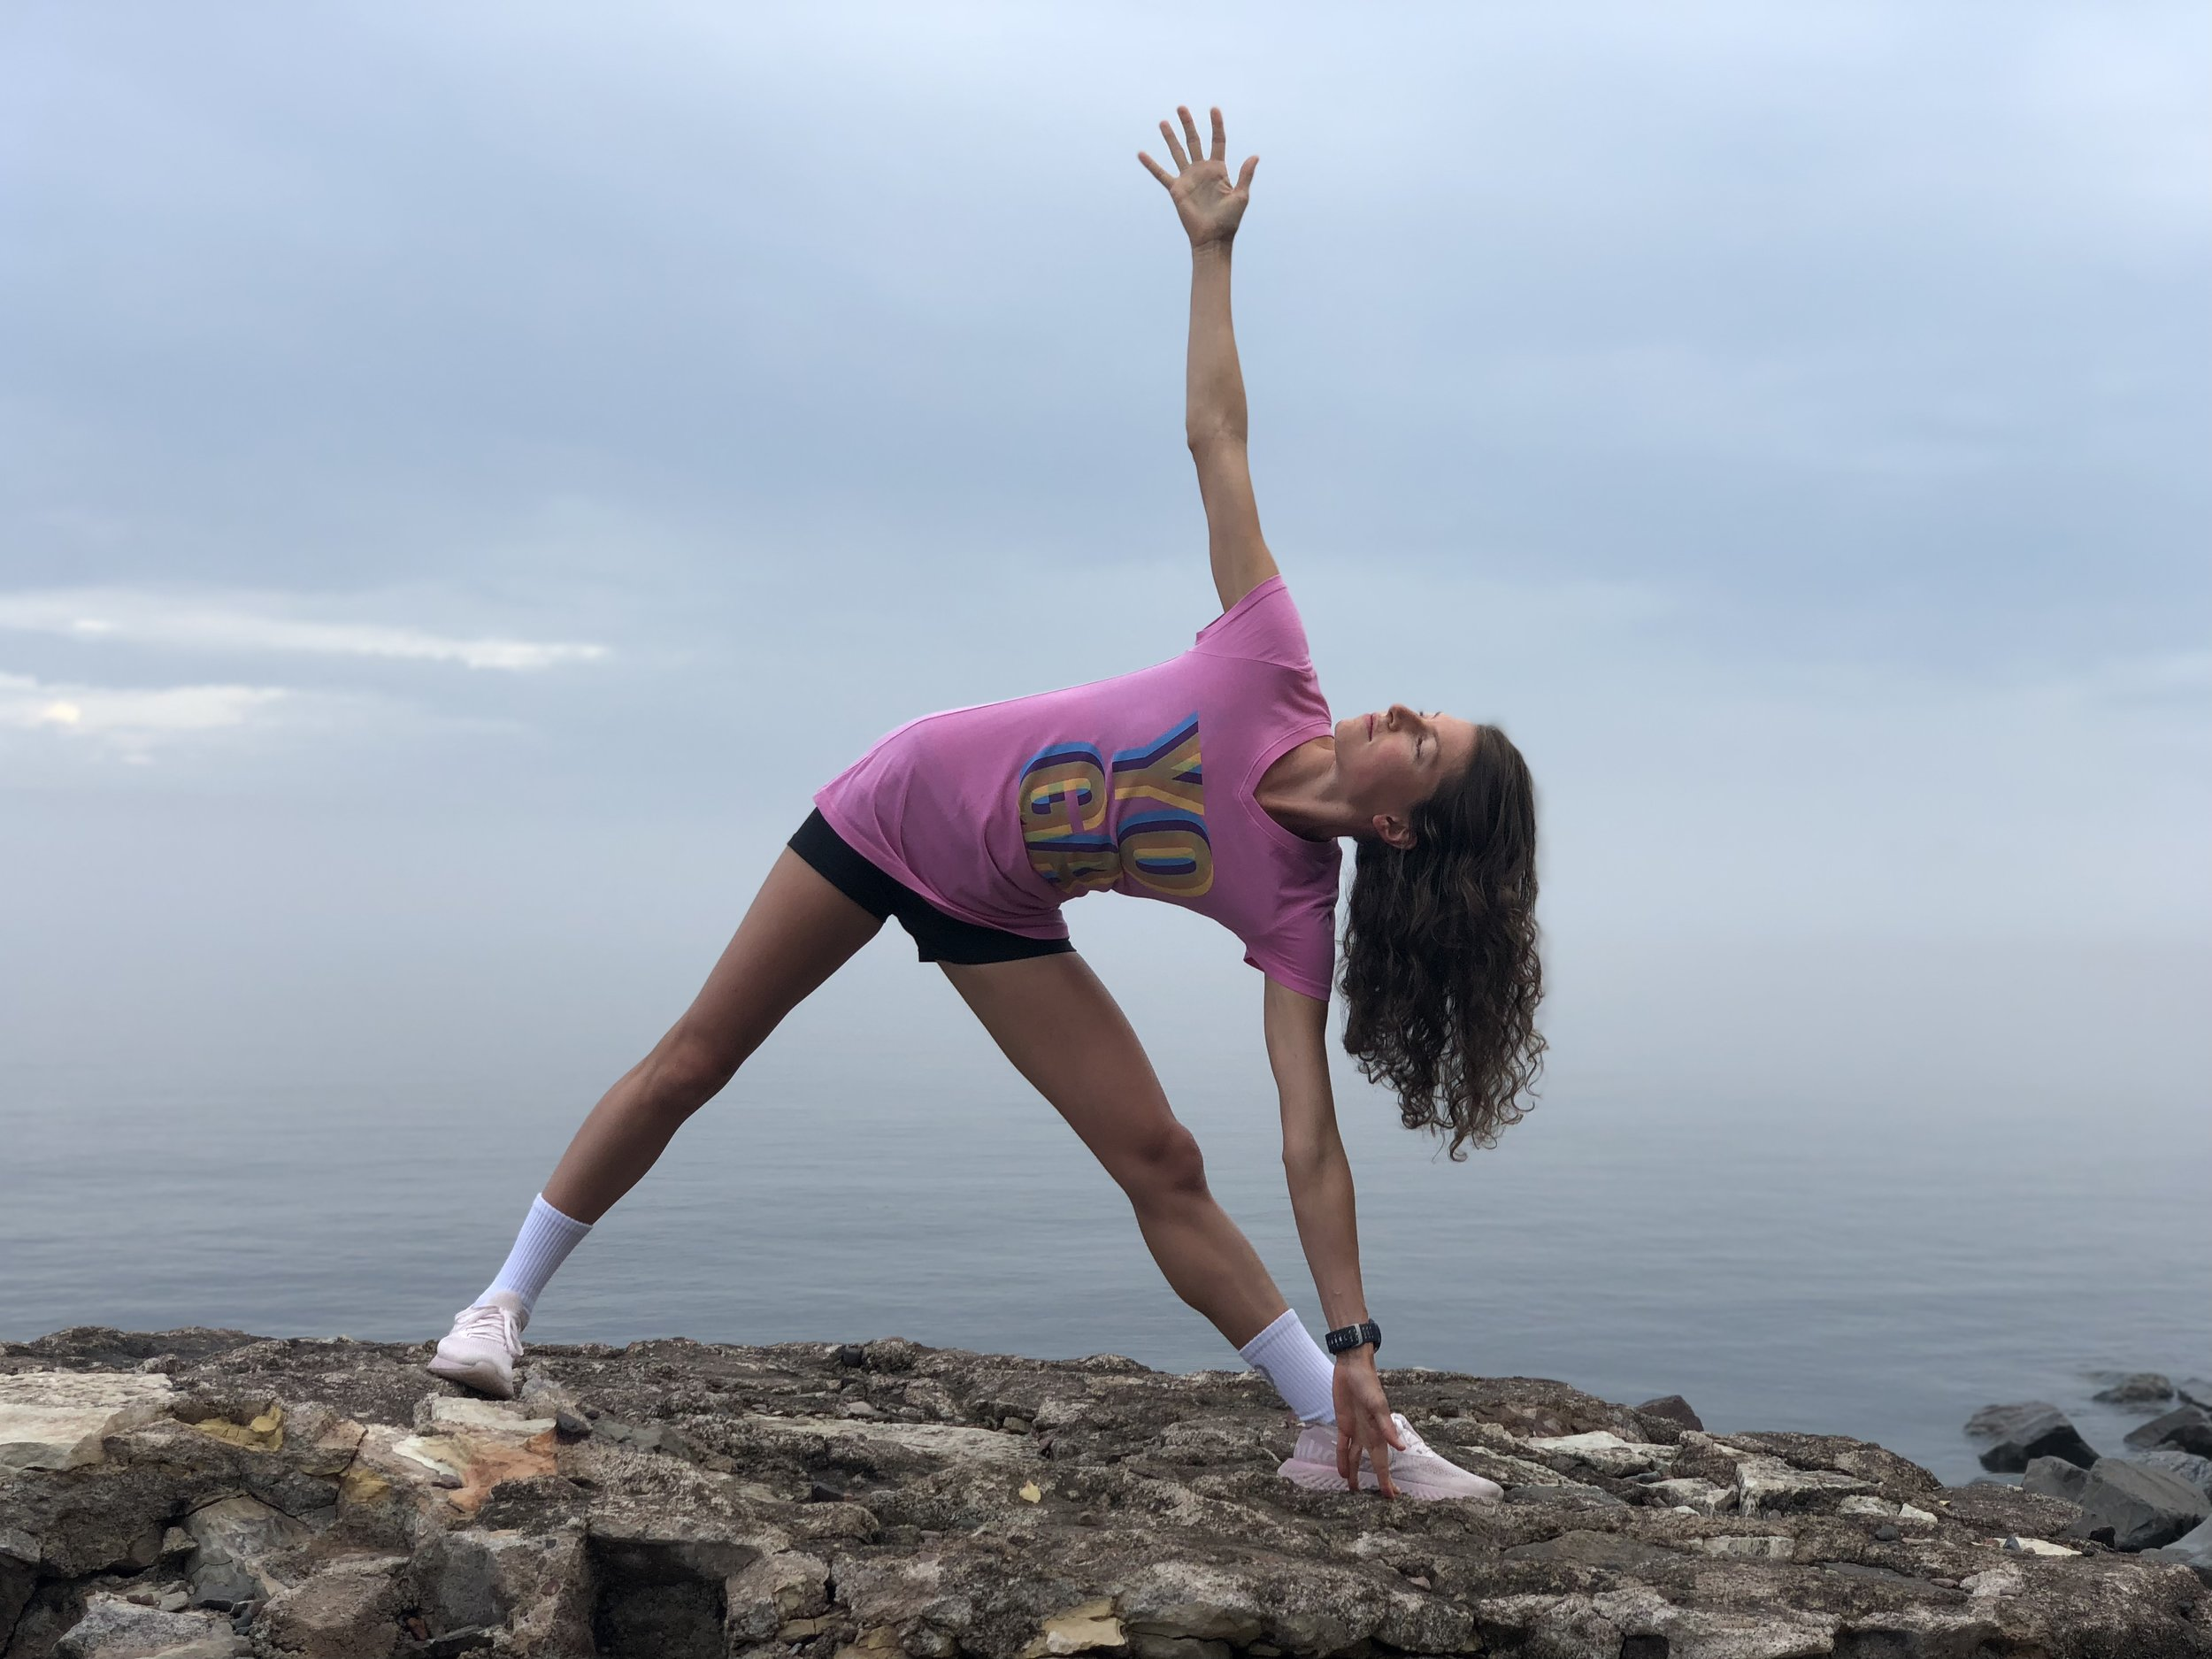 Remember EVERY little bit of yoga adds up, and even a couple poses each day count. FYI: Beach Yoga Tee shown here